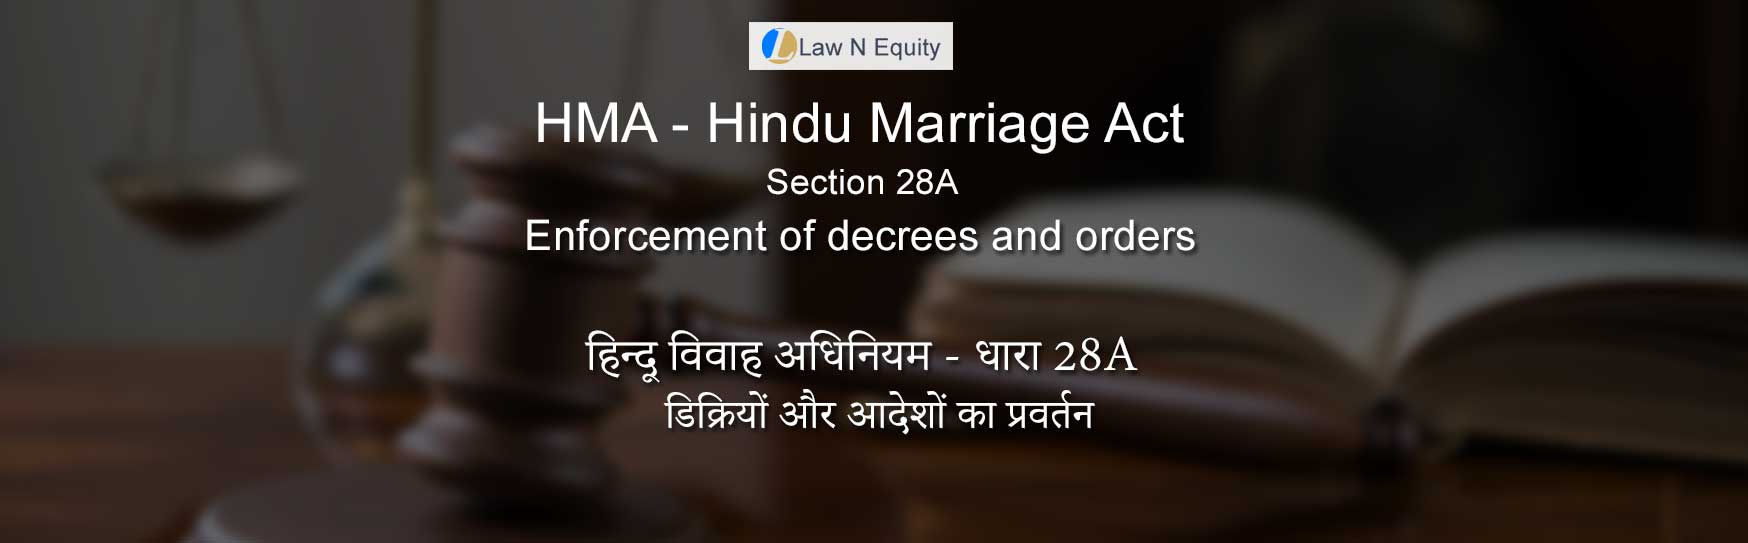 Hindu Marriage Act(HMA) Section 28A